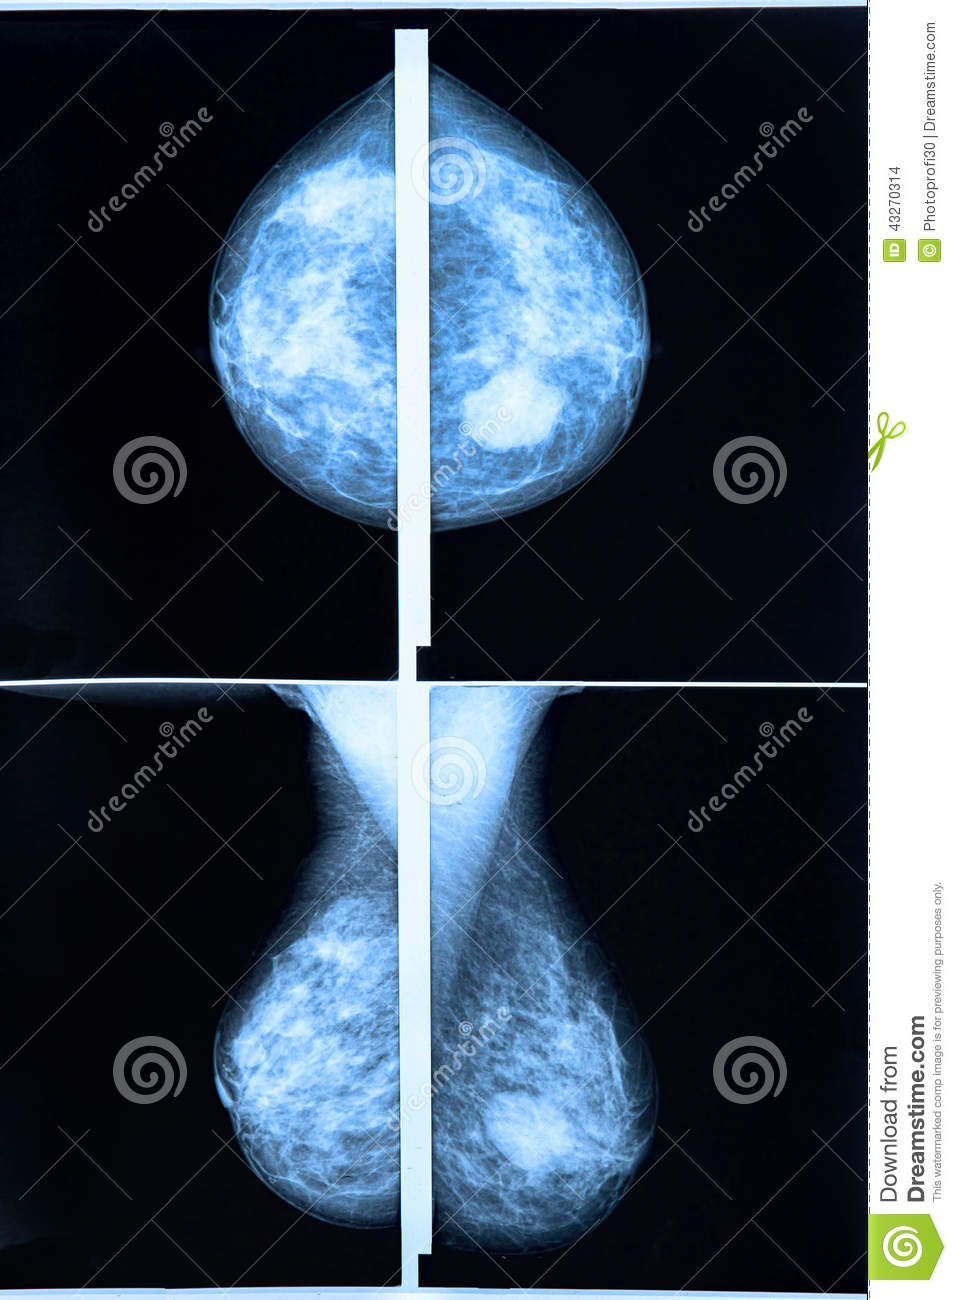 3D Mammography (Tomosynthesis)